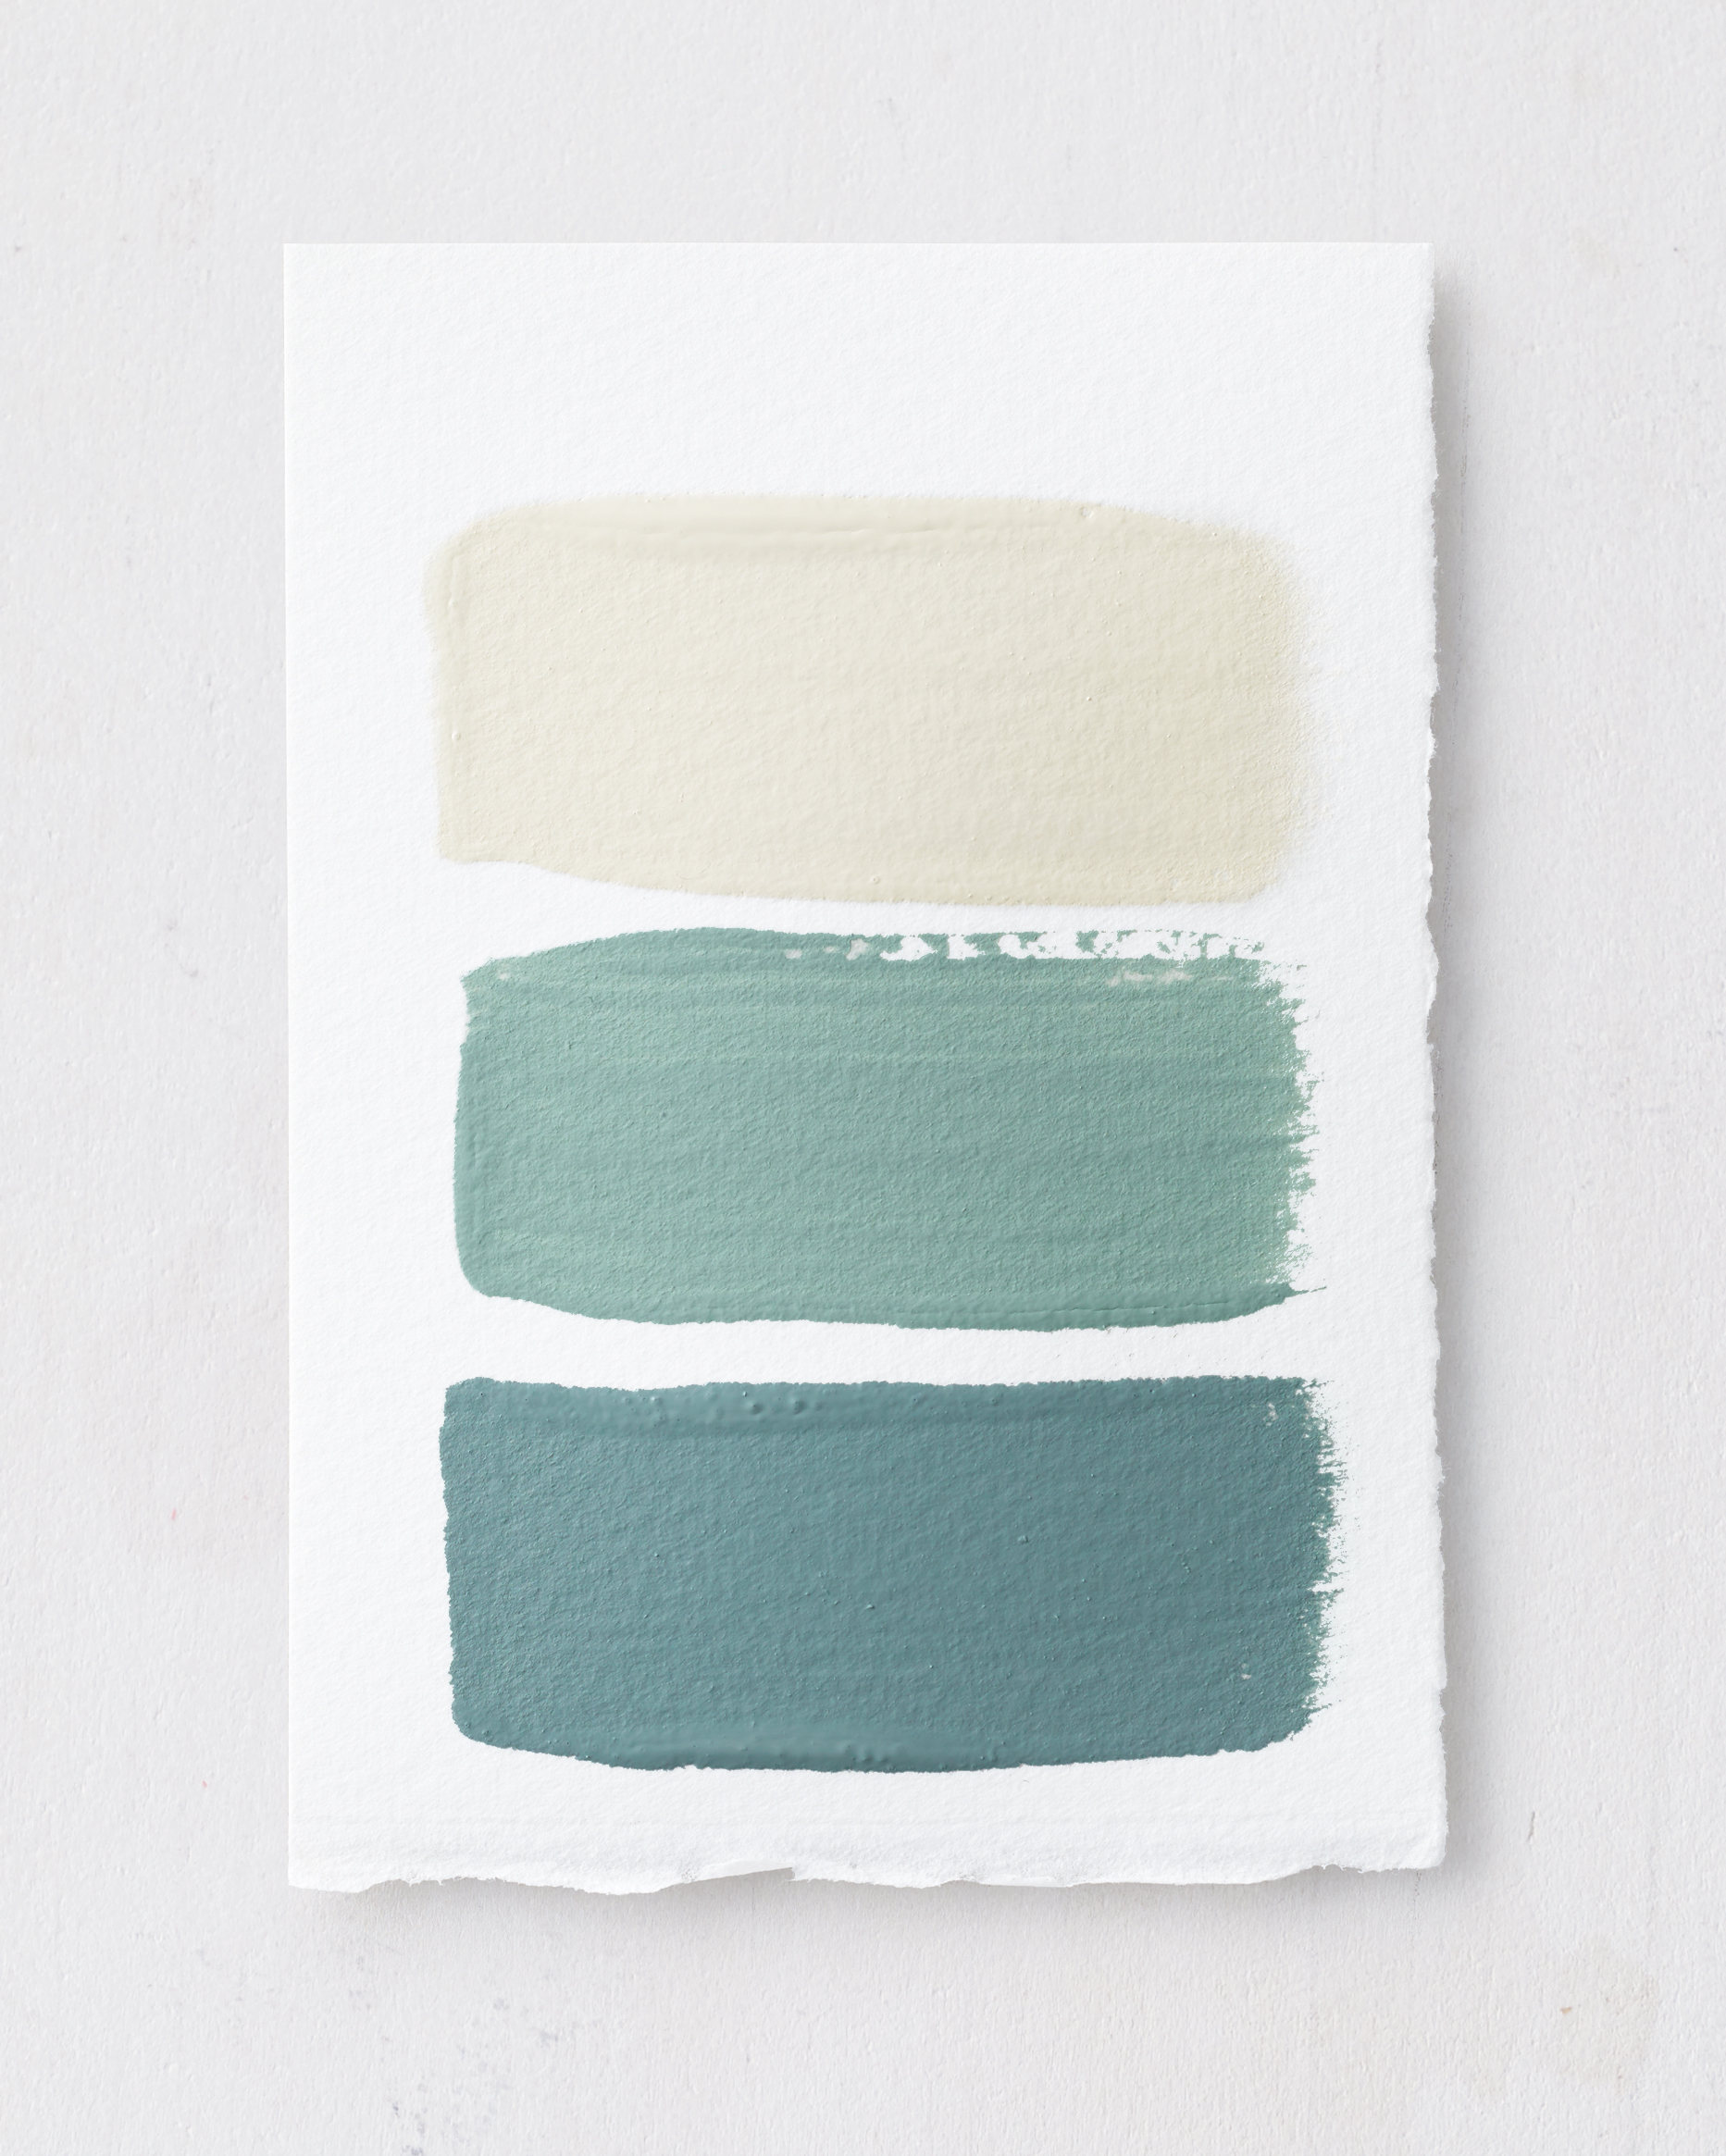 paint-swatch-david-rau-mld110837-2.jpg